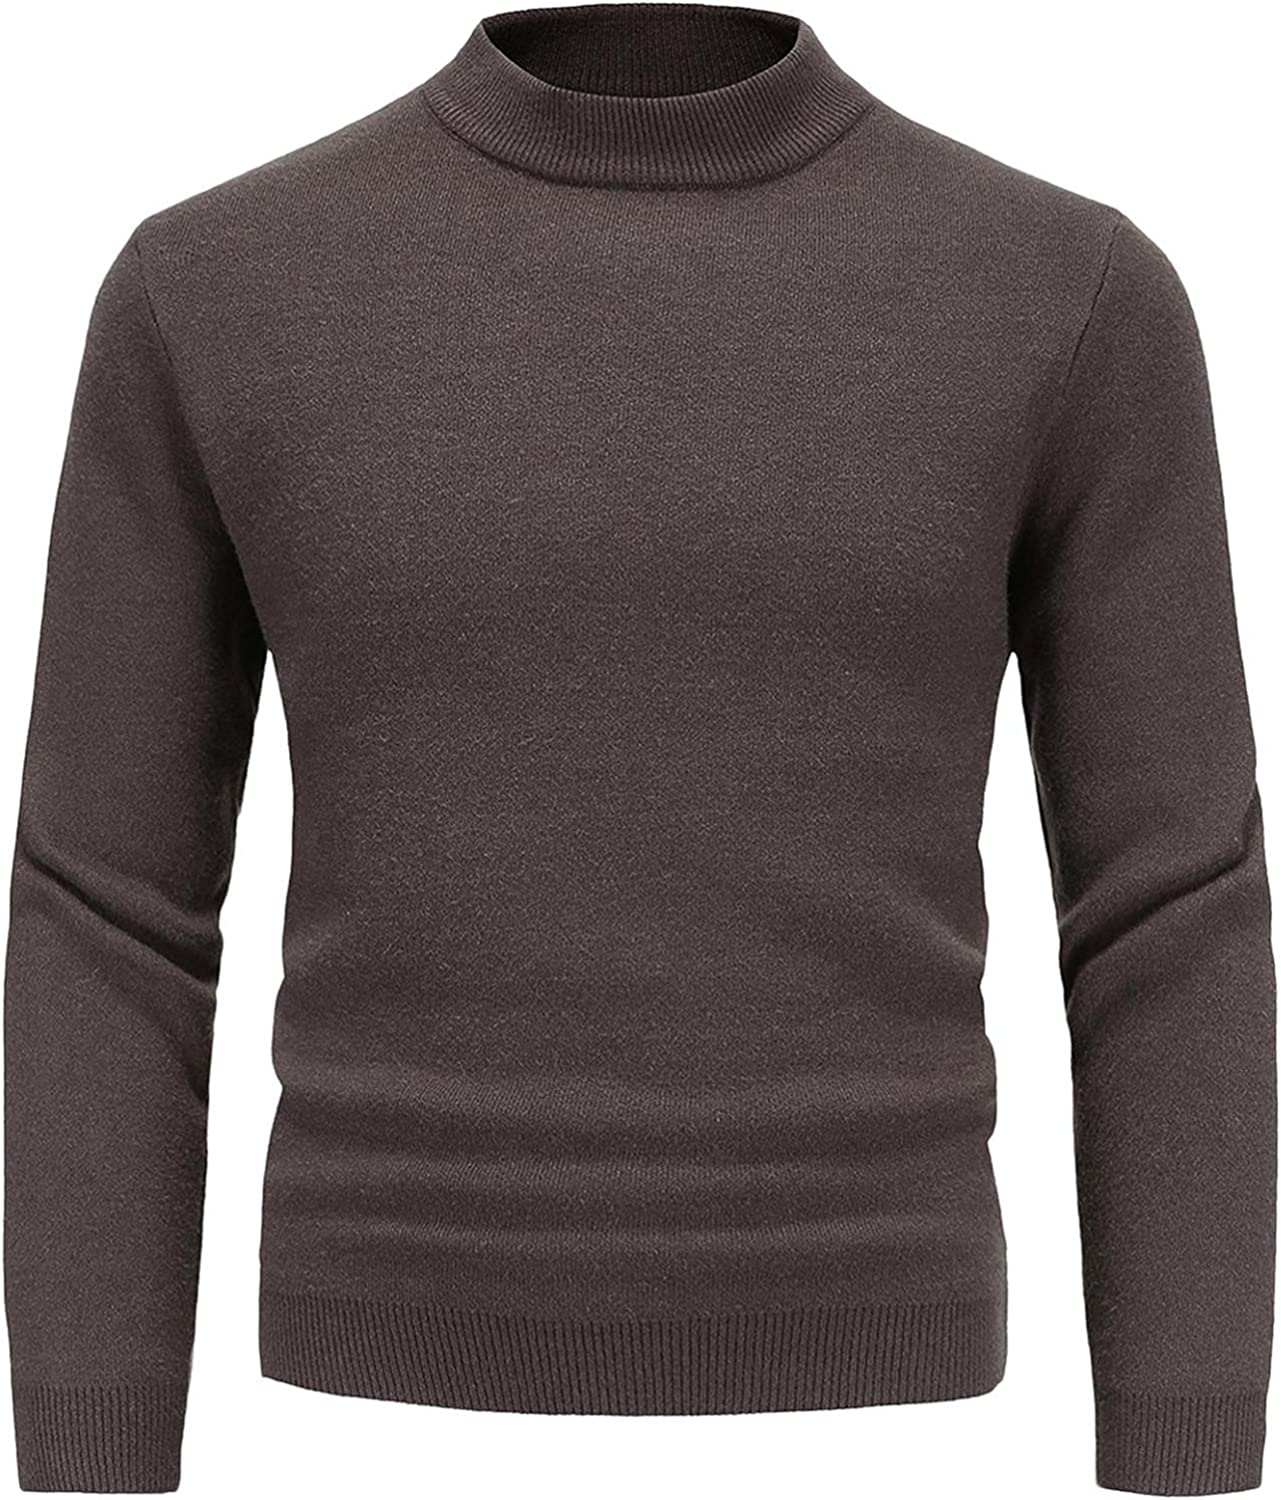 LEIYAN ! Super beauty product restock quality top! Mens Ultra Soft Knitted Sweaters Cas Sleeve Slim Free shipping anywhere in the nation Long Fit